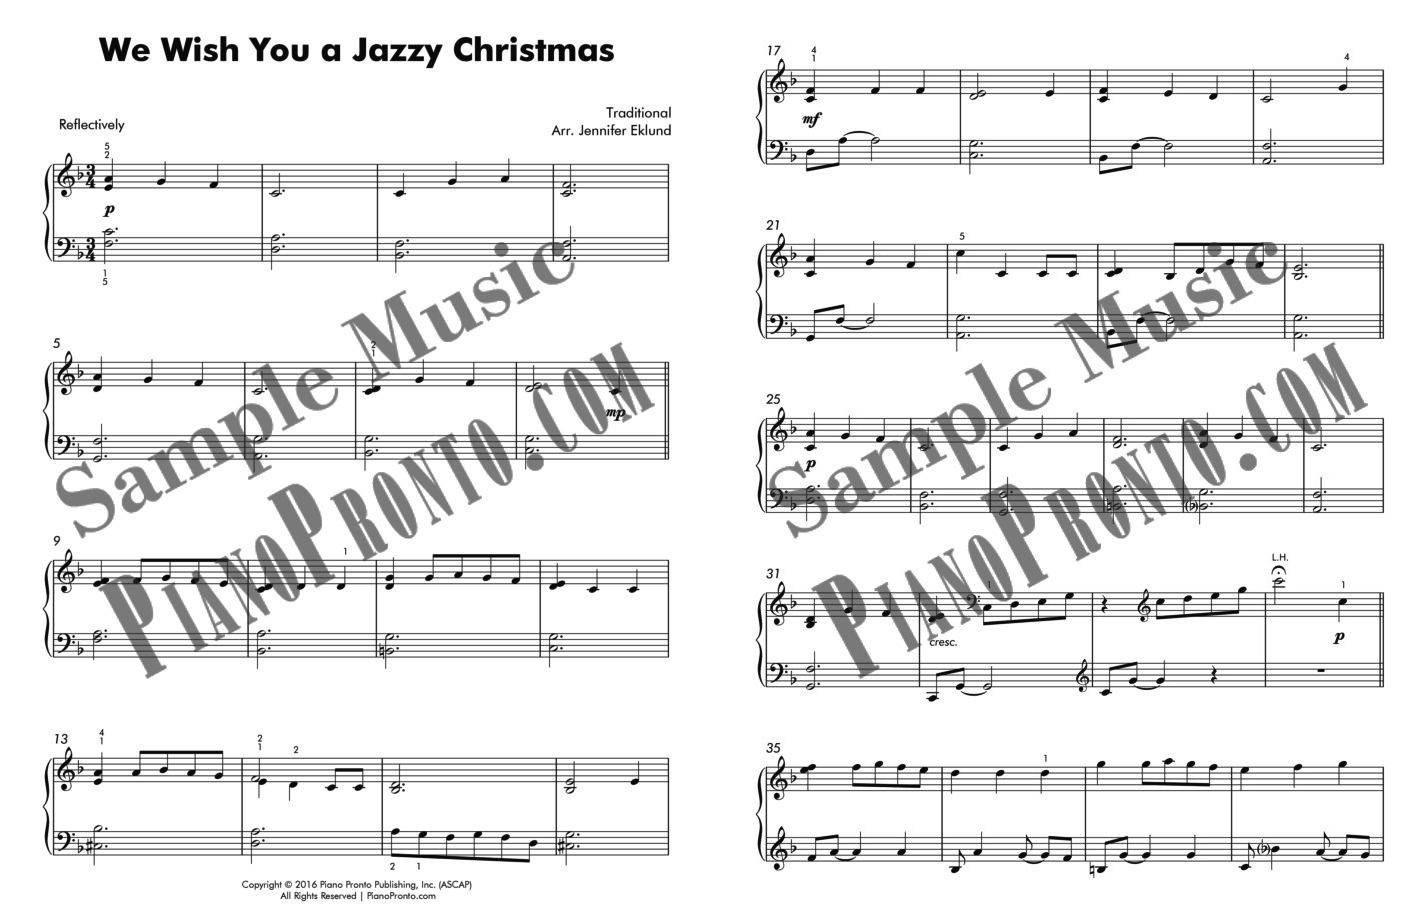 We Wish You a Jazzy Christmas | Sheet